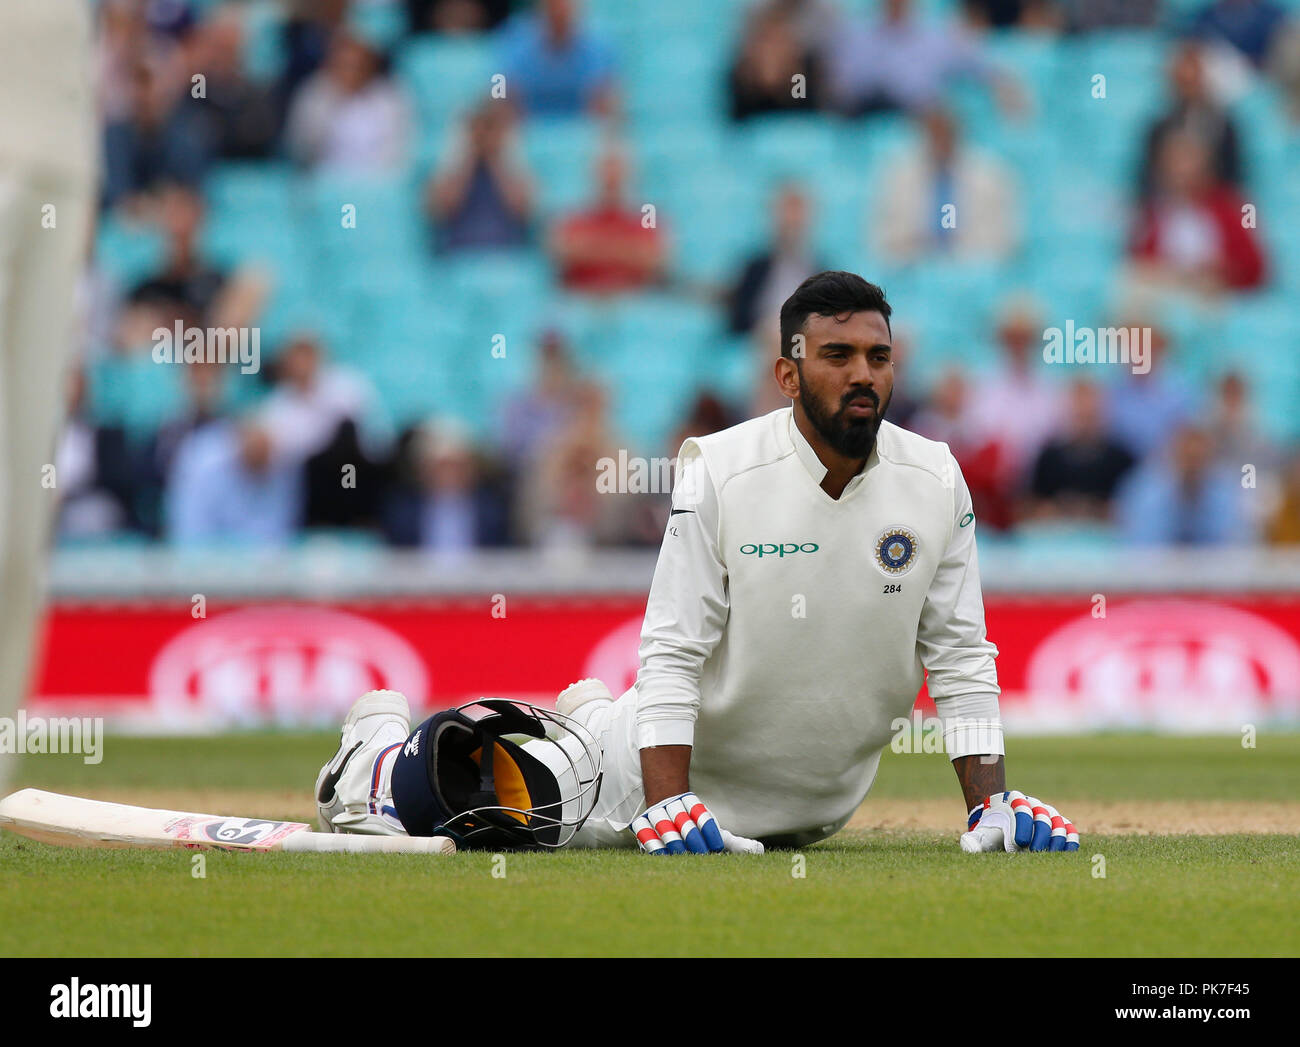 Kia Oval, London, UK. 11th Sep, 2018. Specsavers International Test Match Cricket, 5th test, day 5; KL Rahul of India stretches during a break in play Credit: Action Plus Sports/Alamy Live News - Stock Image